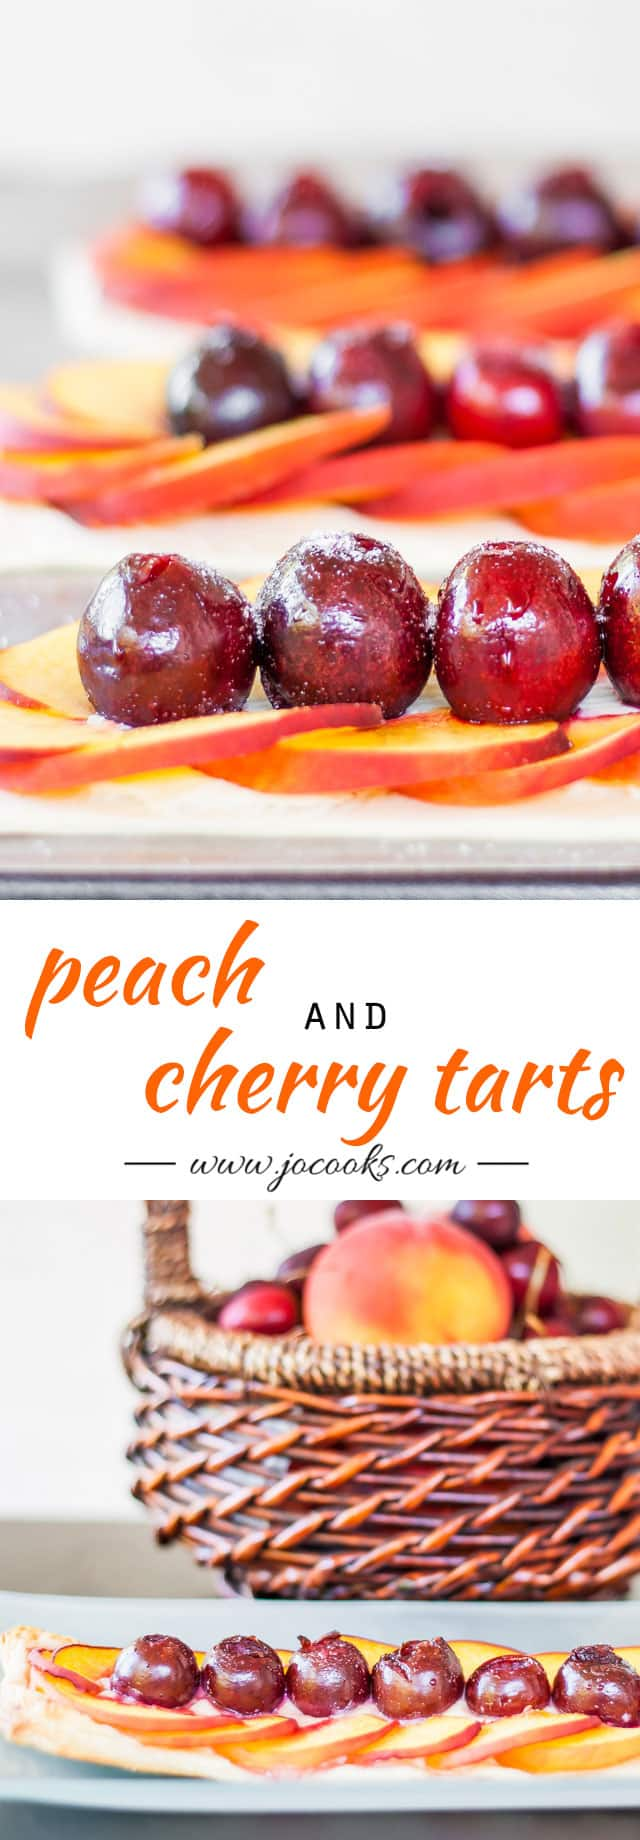 peach-and-cherry-tarts-collage